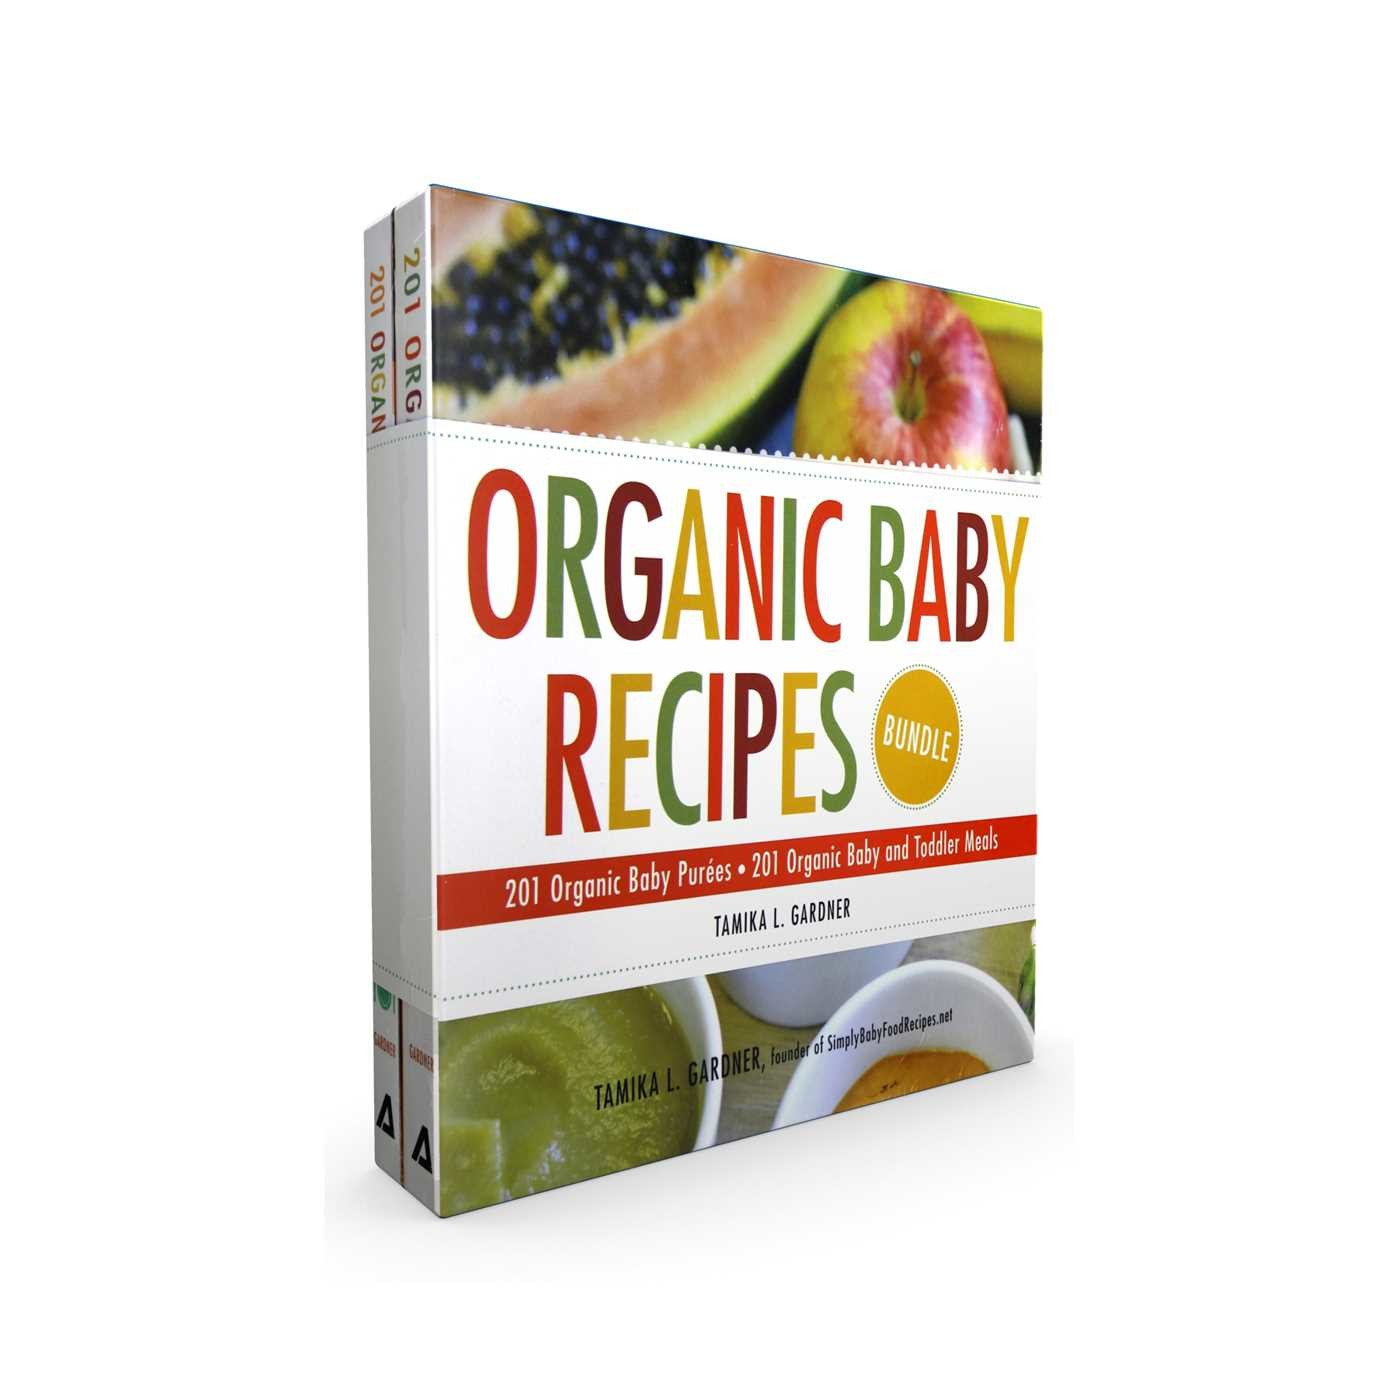 Organic baby recipes bundle book by tamika l gardner official organic baby recipes collection 978150720680517 forumfinder Choice Image